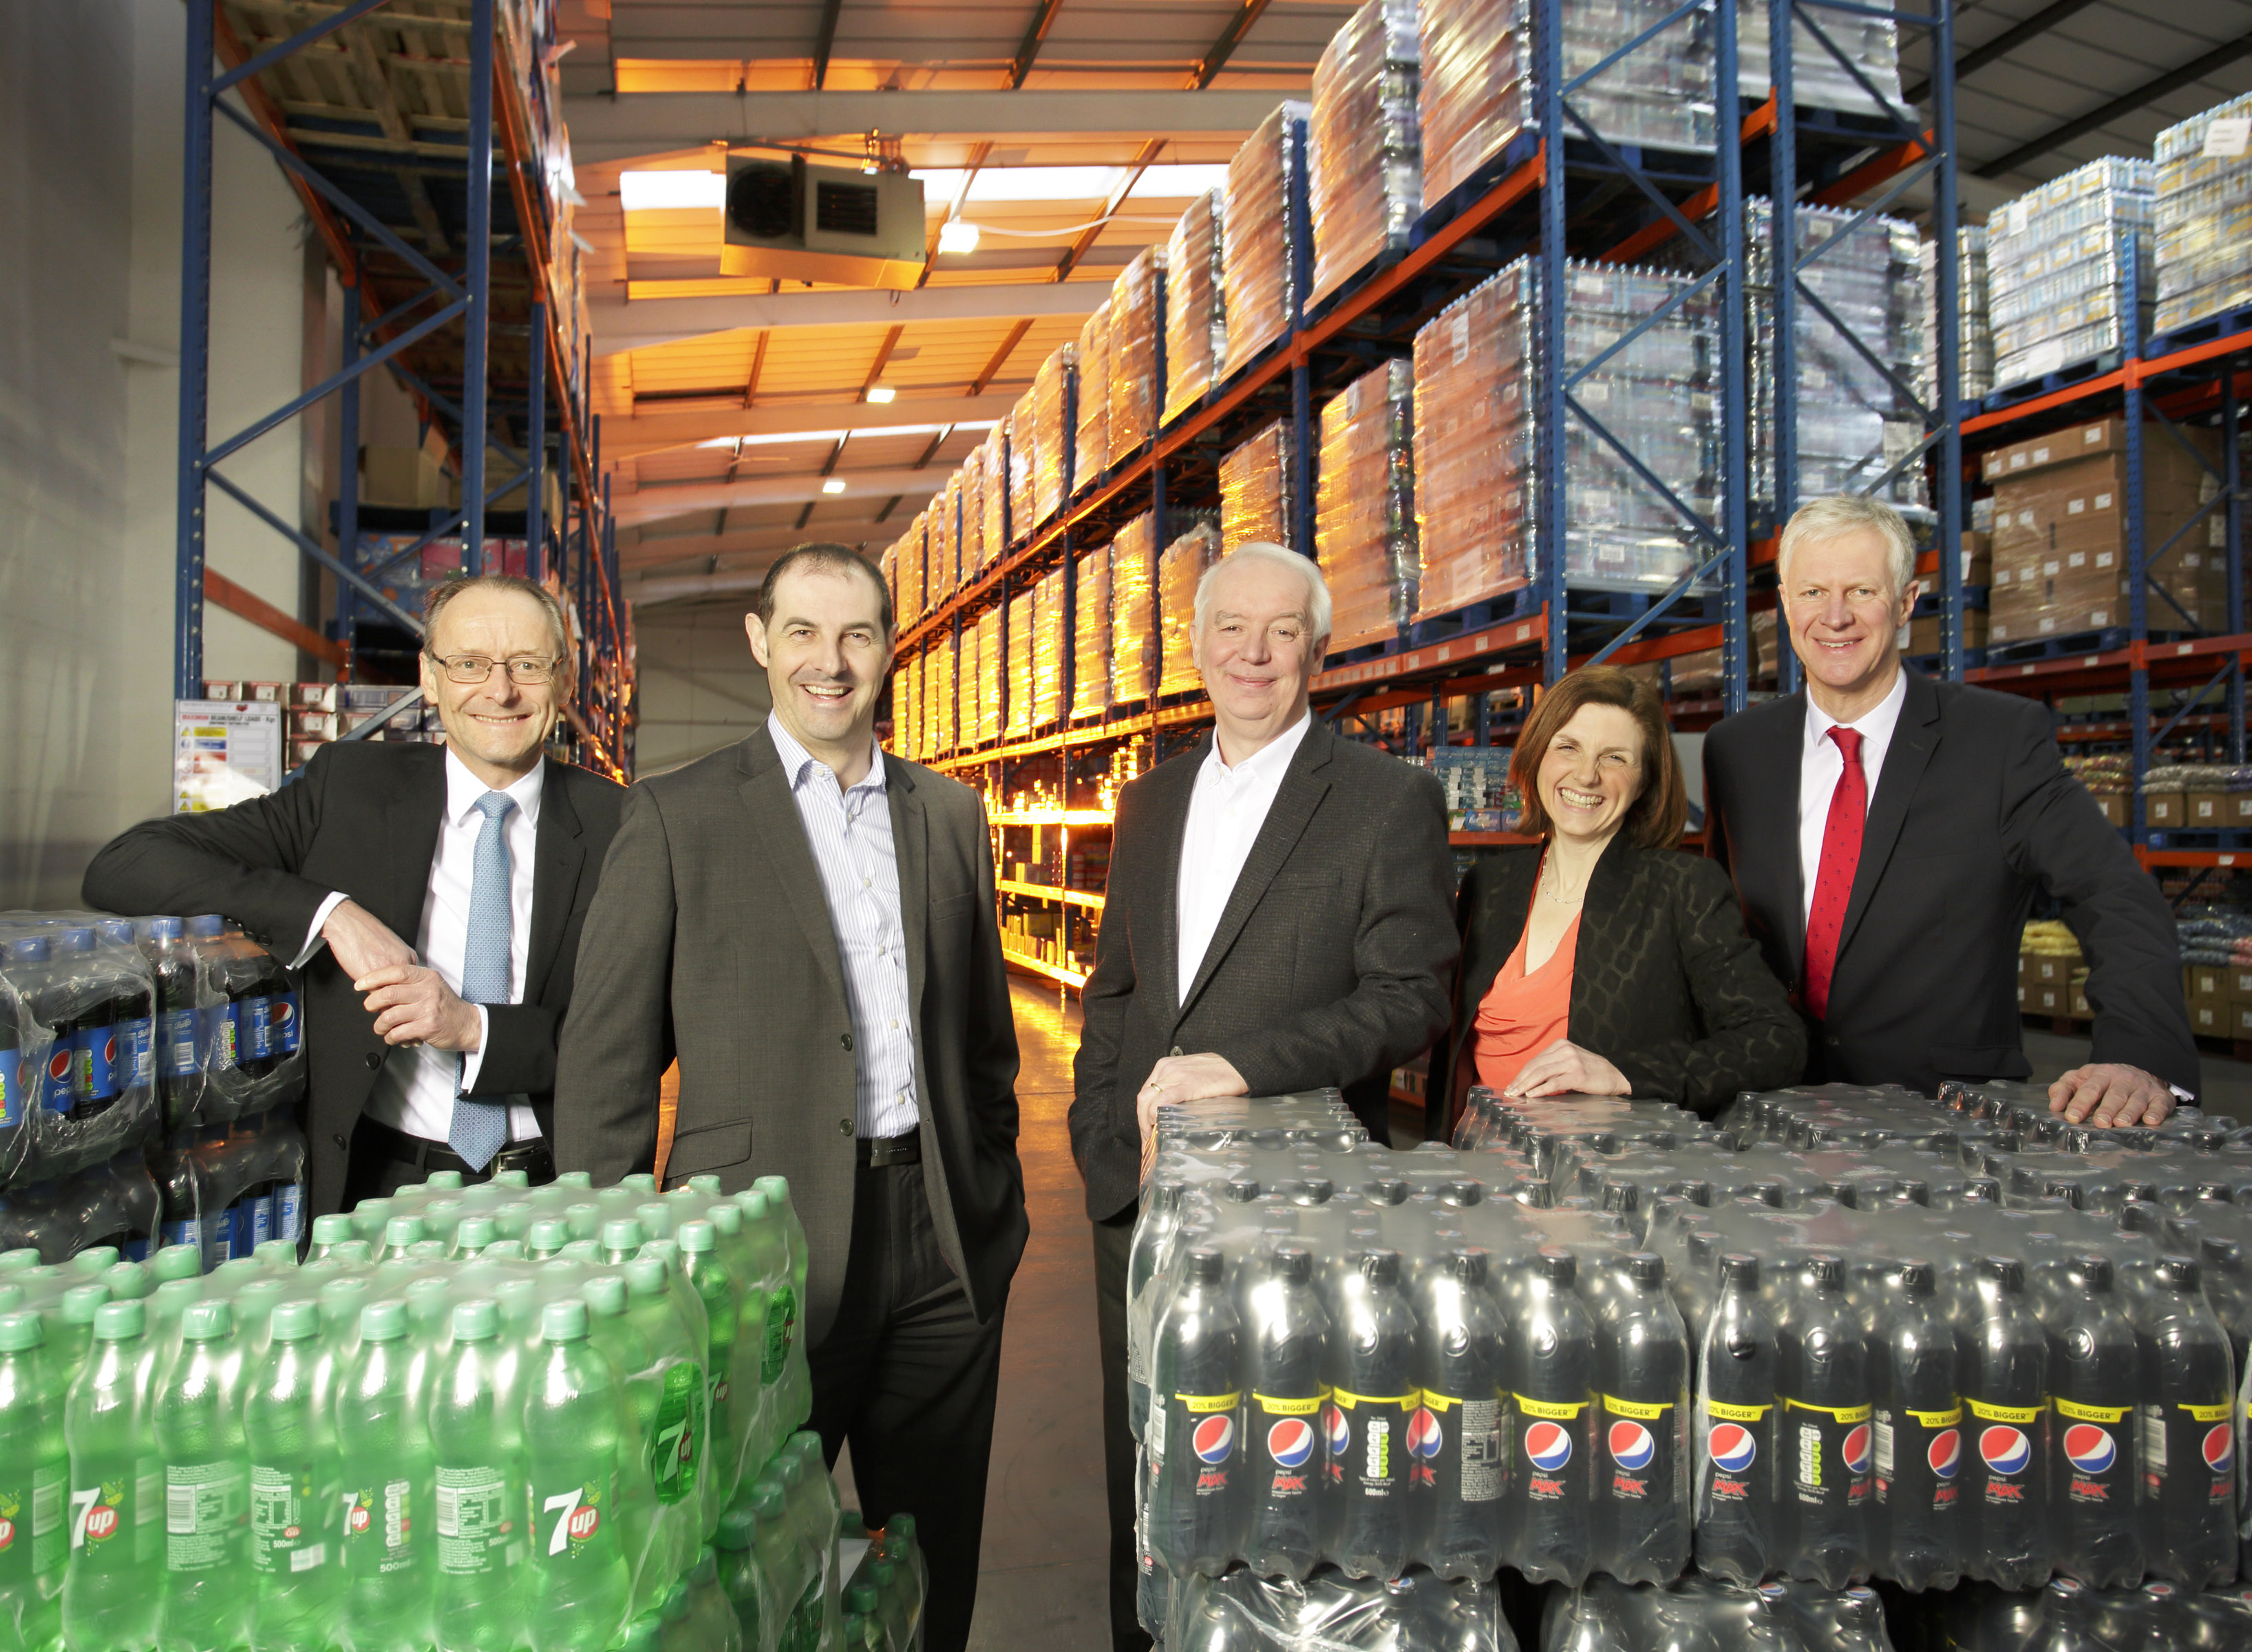 L-R Hugh Welch, Muckle; David Brind, Kitwave FD; Paul Young, Kitwave CEO; Louise Duffy, Muckle; Rod Wilkinson, KPMG